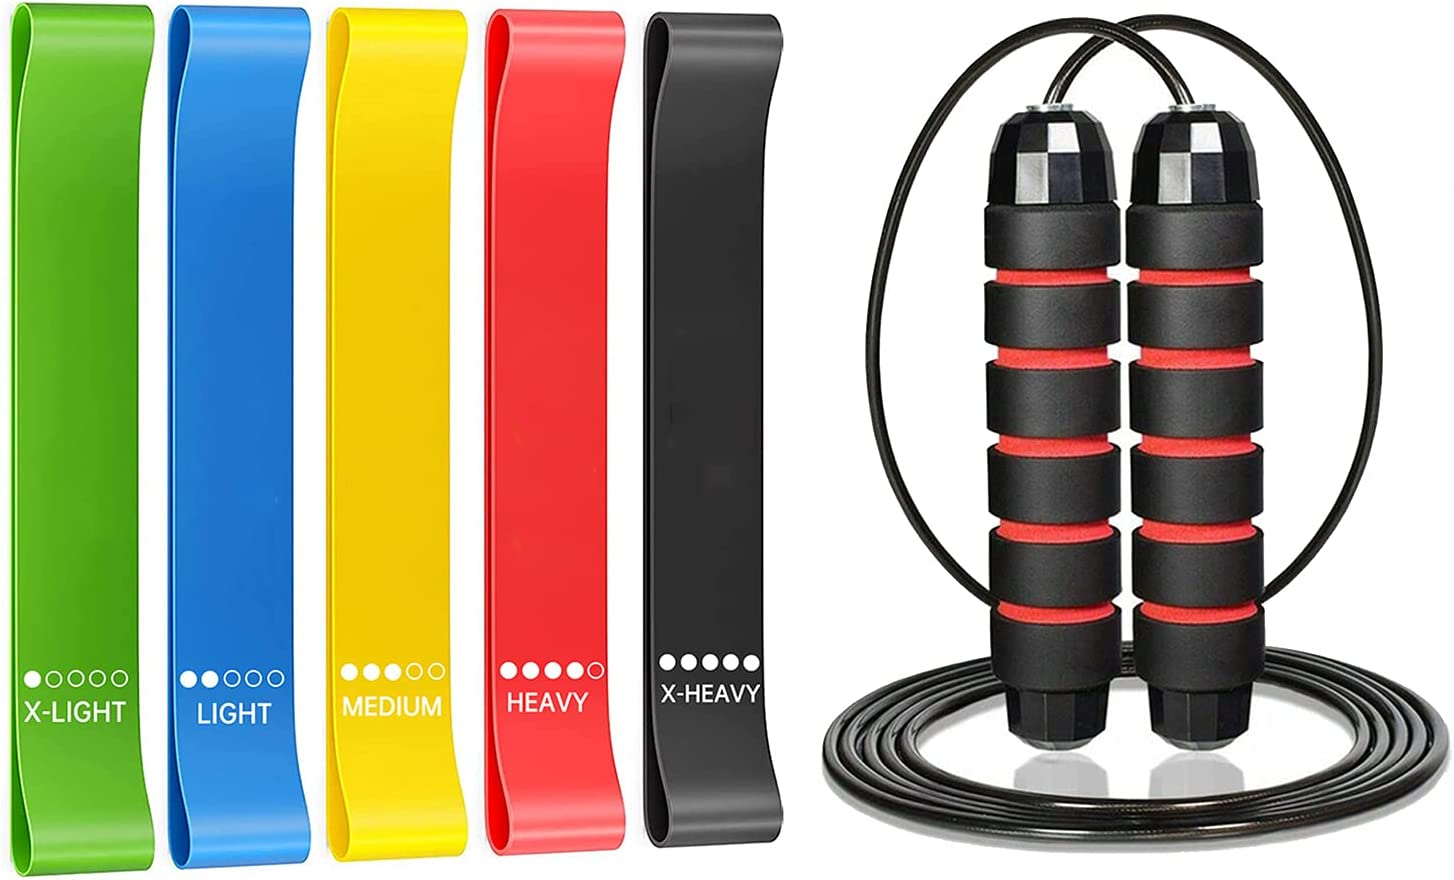 FOIIOE 5Pcs Loop Resistance Max 87% OFF Bands Stretch with 1 PC Pilates Yoga Clearance SALE! Limited time!